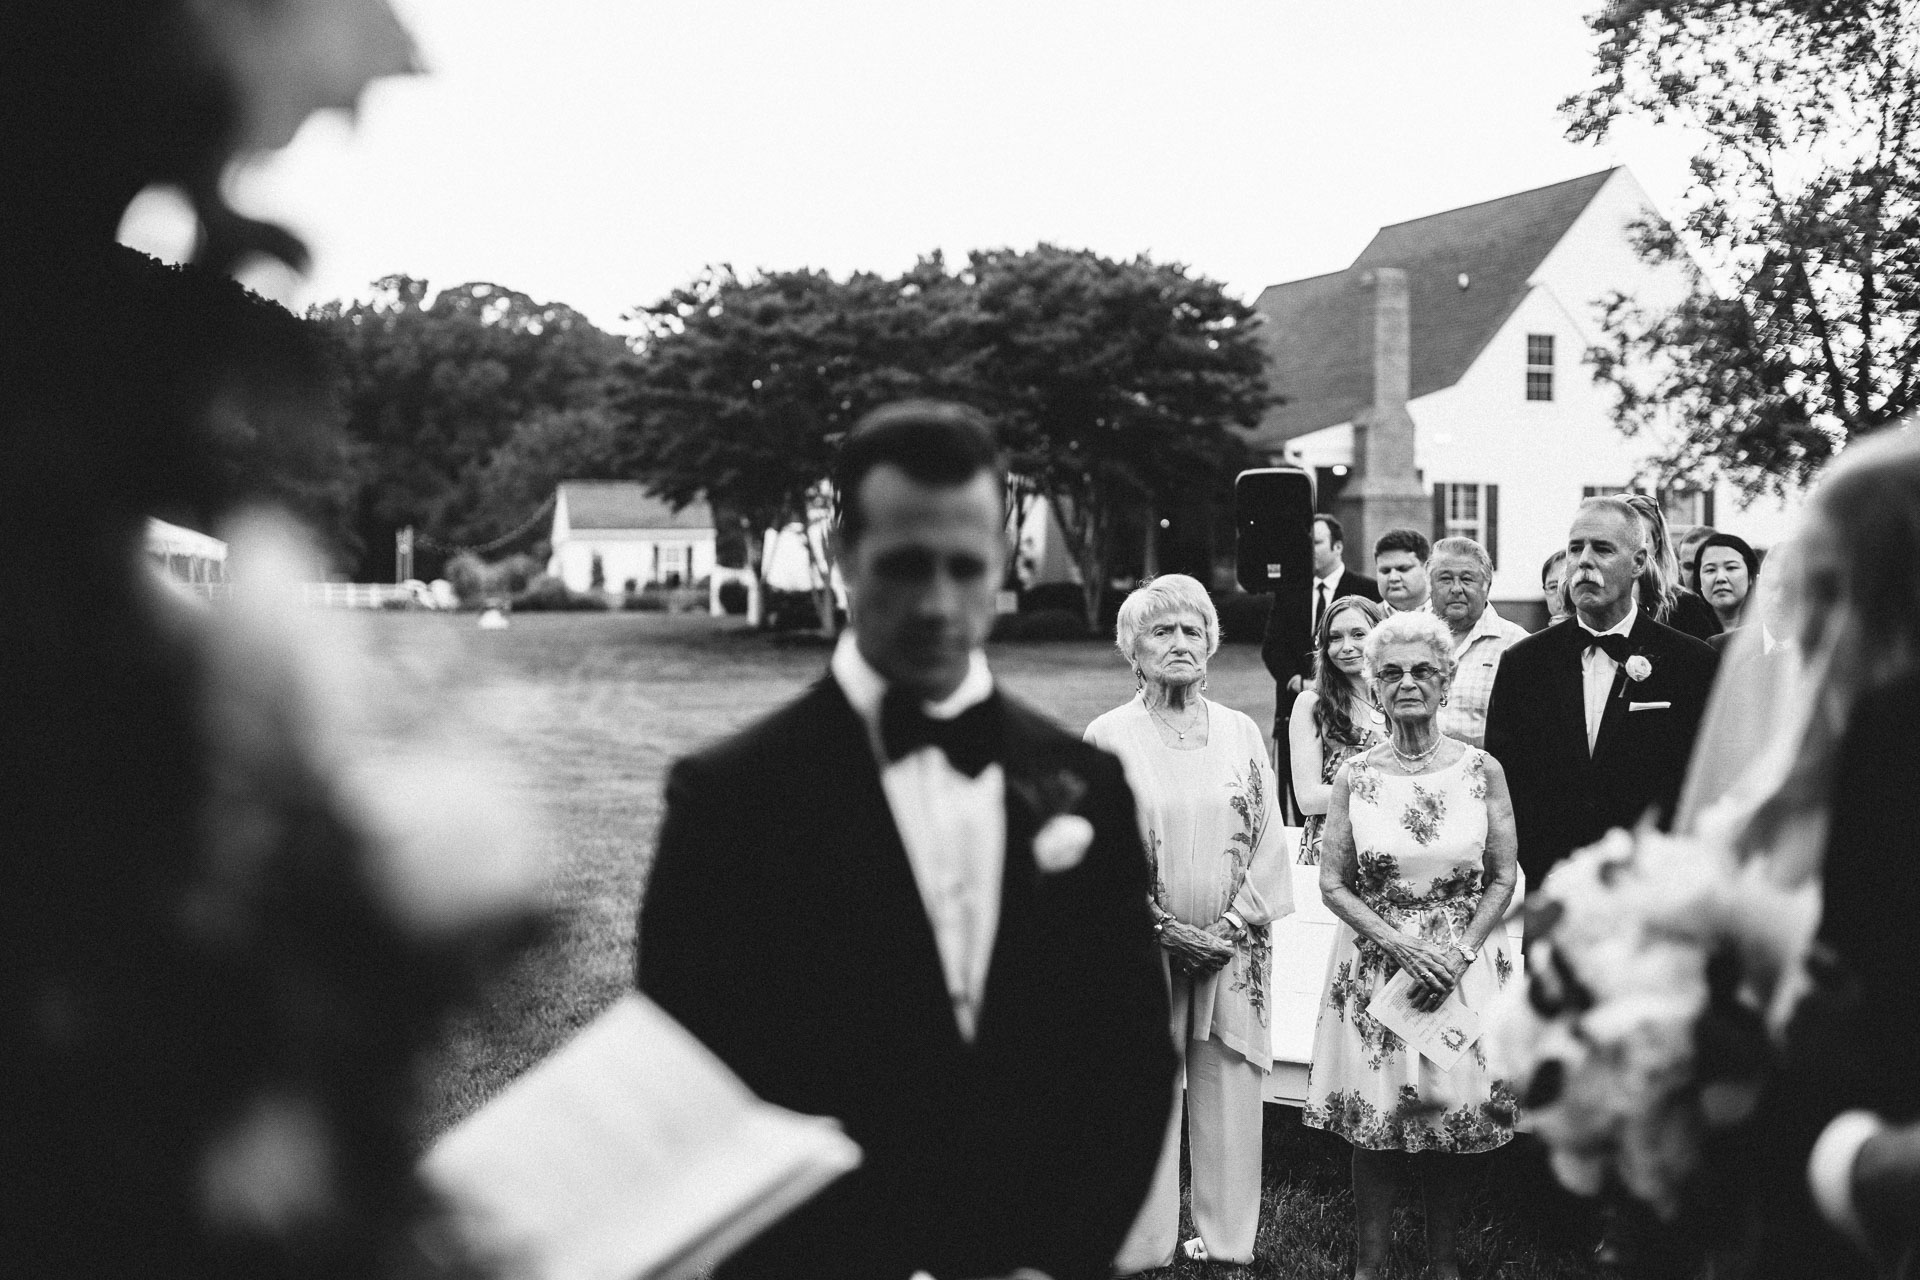 Shawna_Josh_Wedding_Easton_Maryland_JeanLaurentGaudy_072